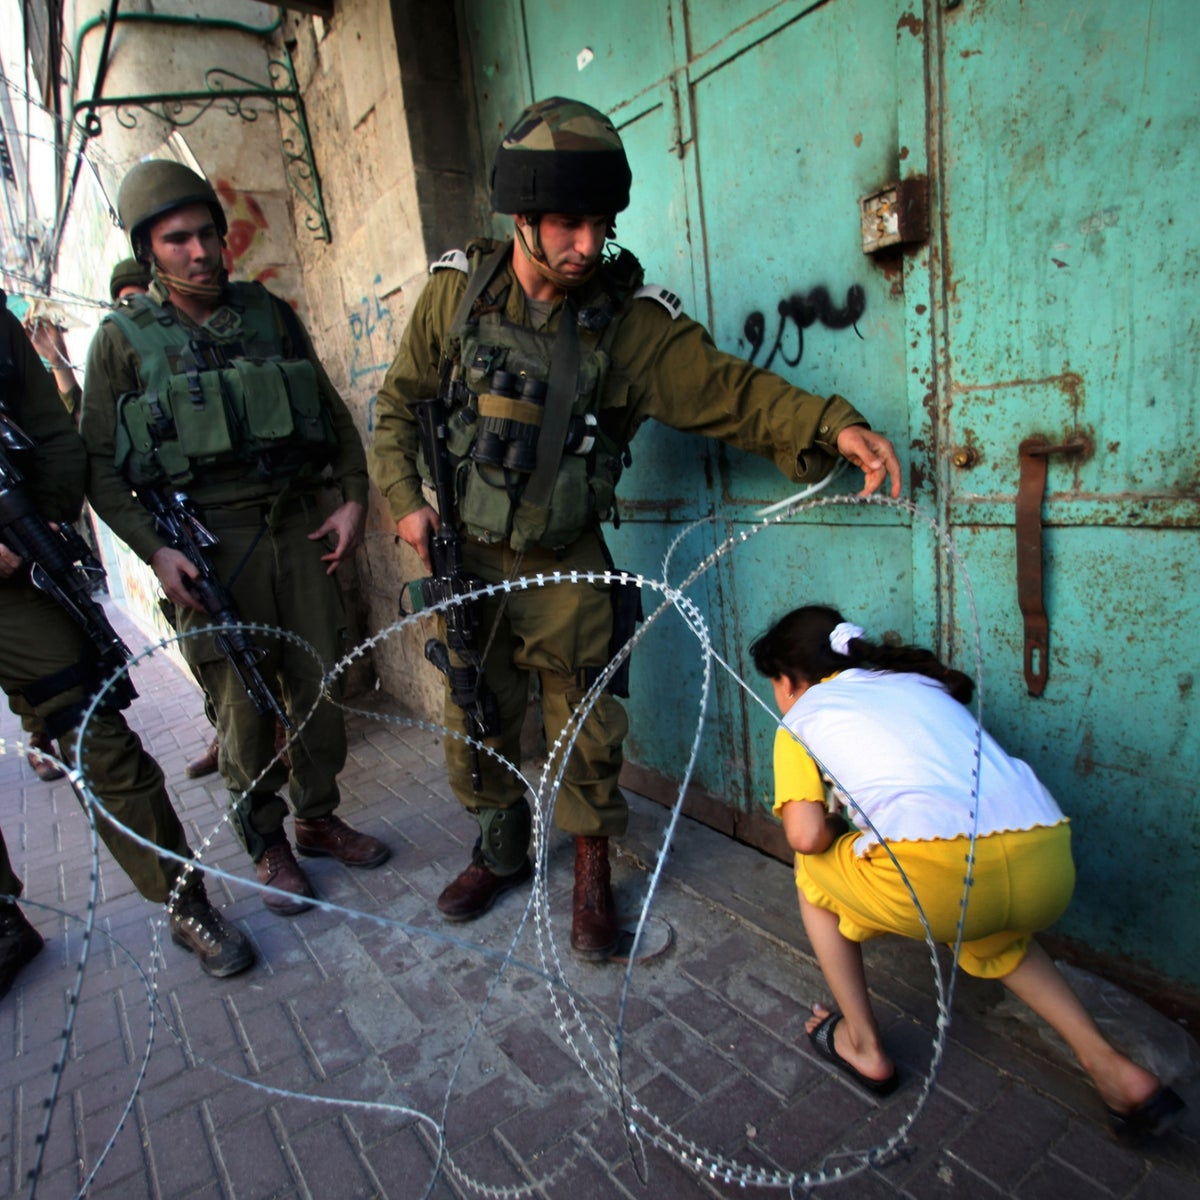 Israeli soldiers let a Palestinian girl make her way past a barbed wire barricade set up to prevent protesting Palestinians from accessing an Israeli settlement, in Hebron, Sept. 14, 2011.